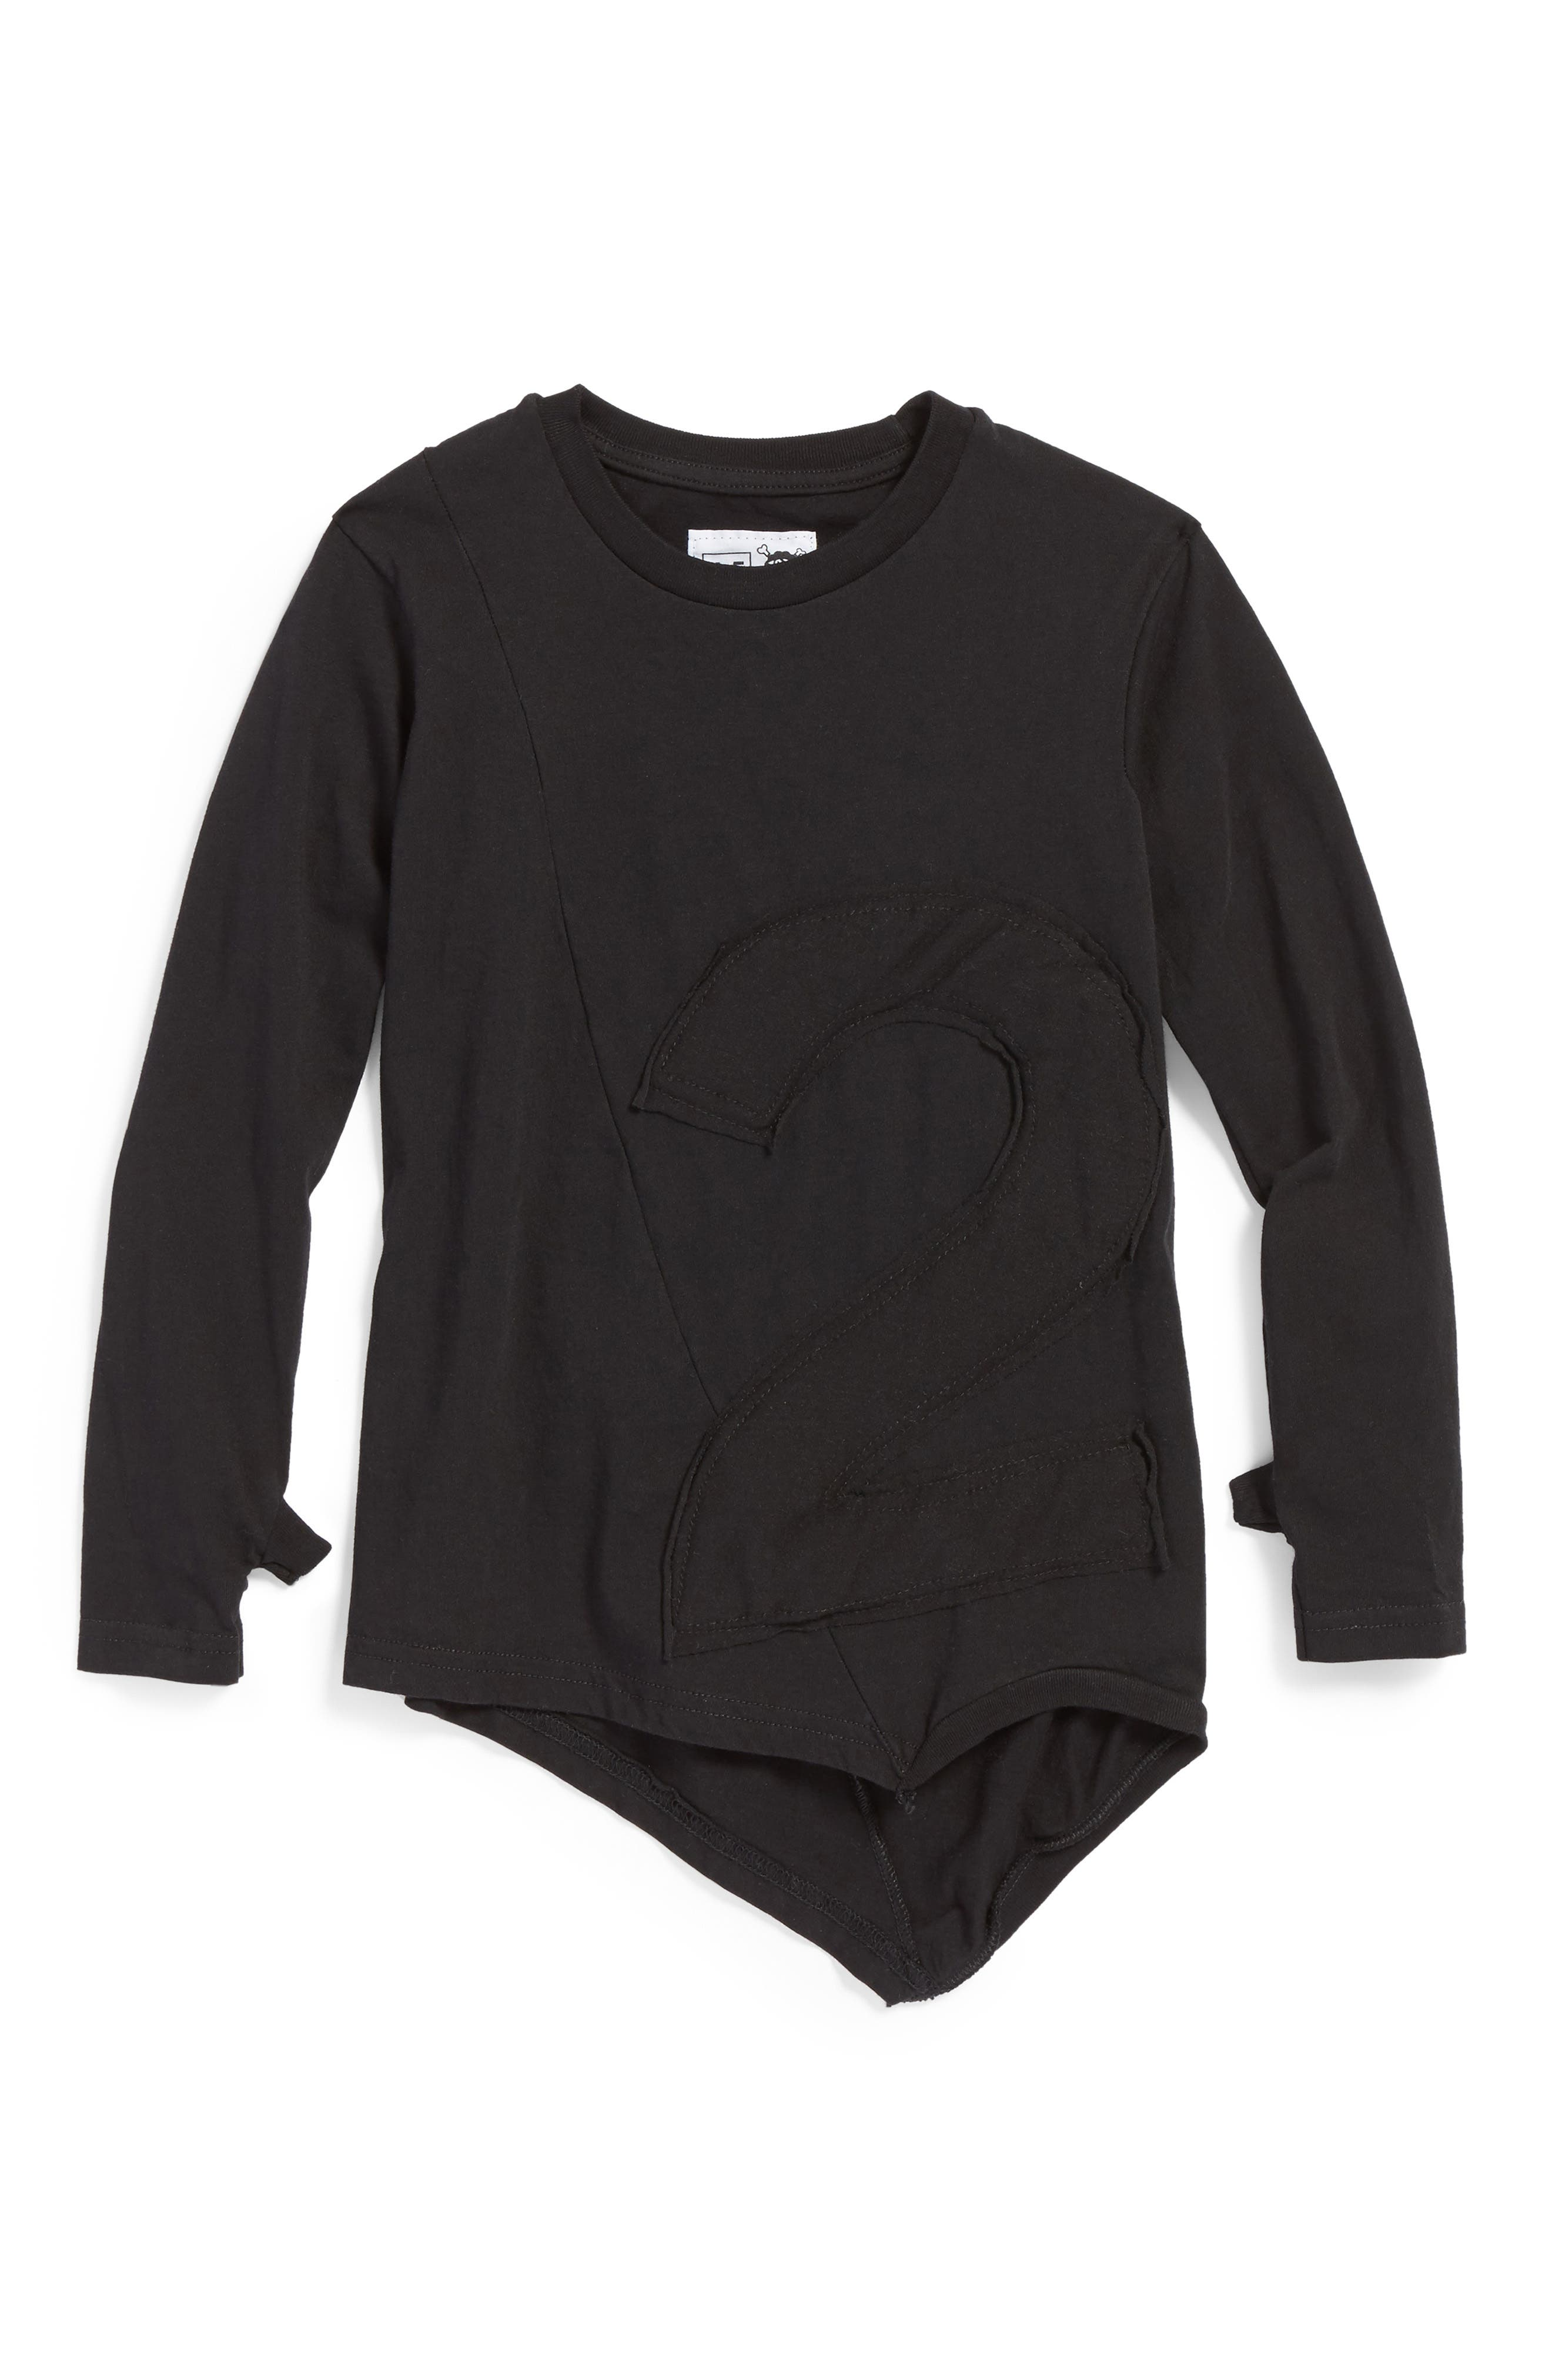 Puffy Number Penguin Shirt,                         Main,                         color, 001